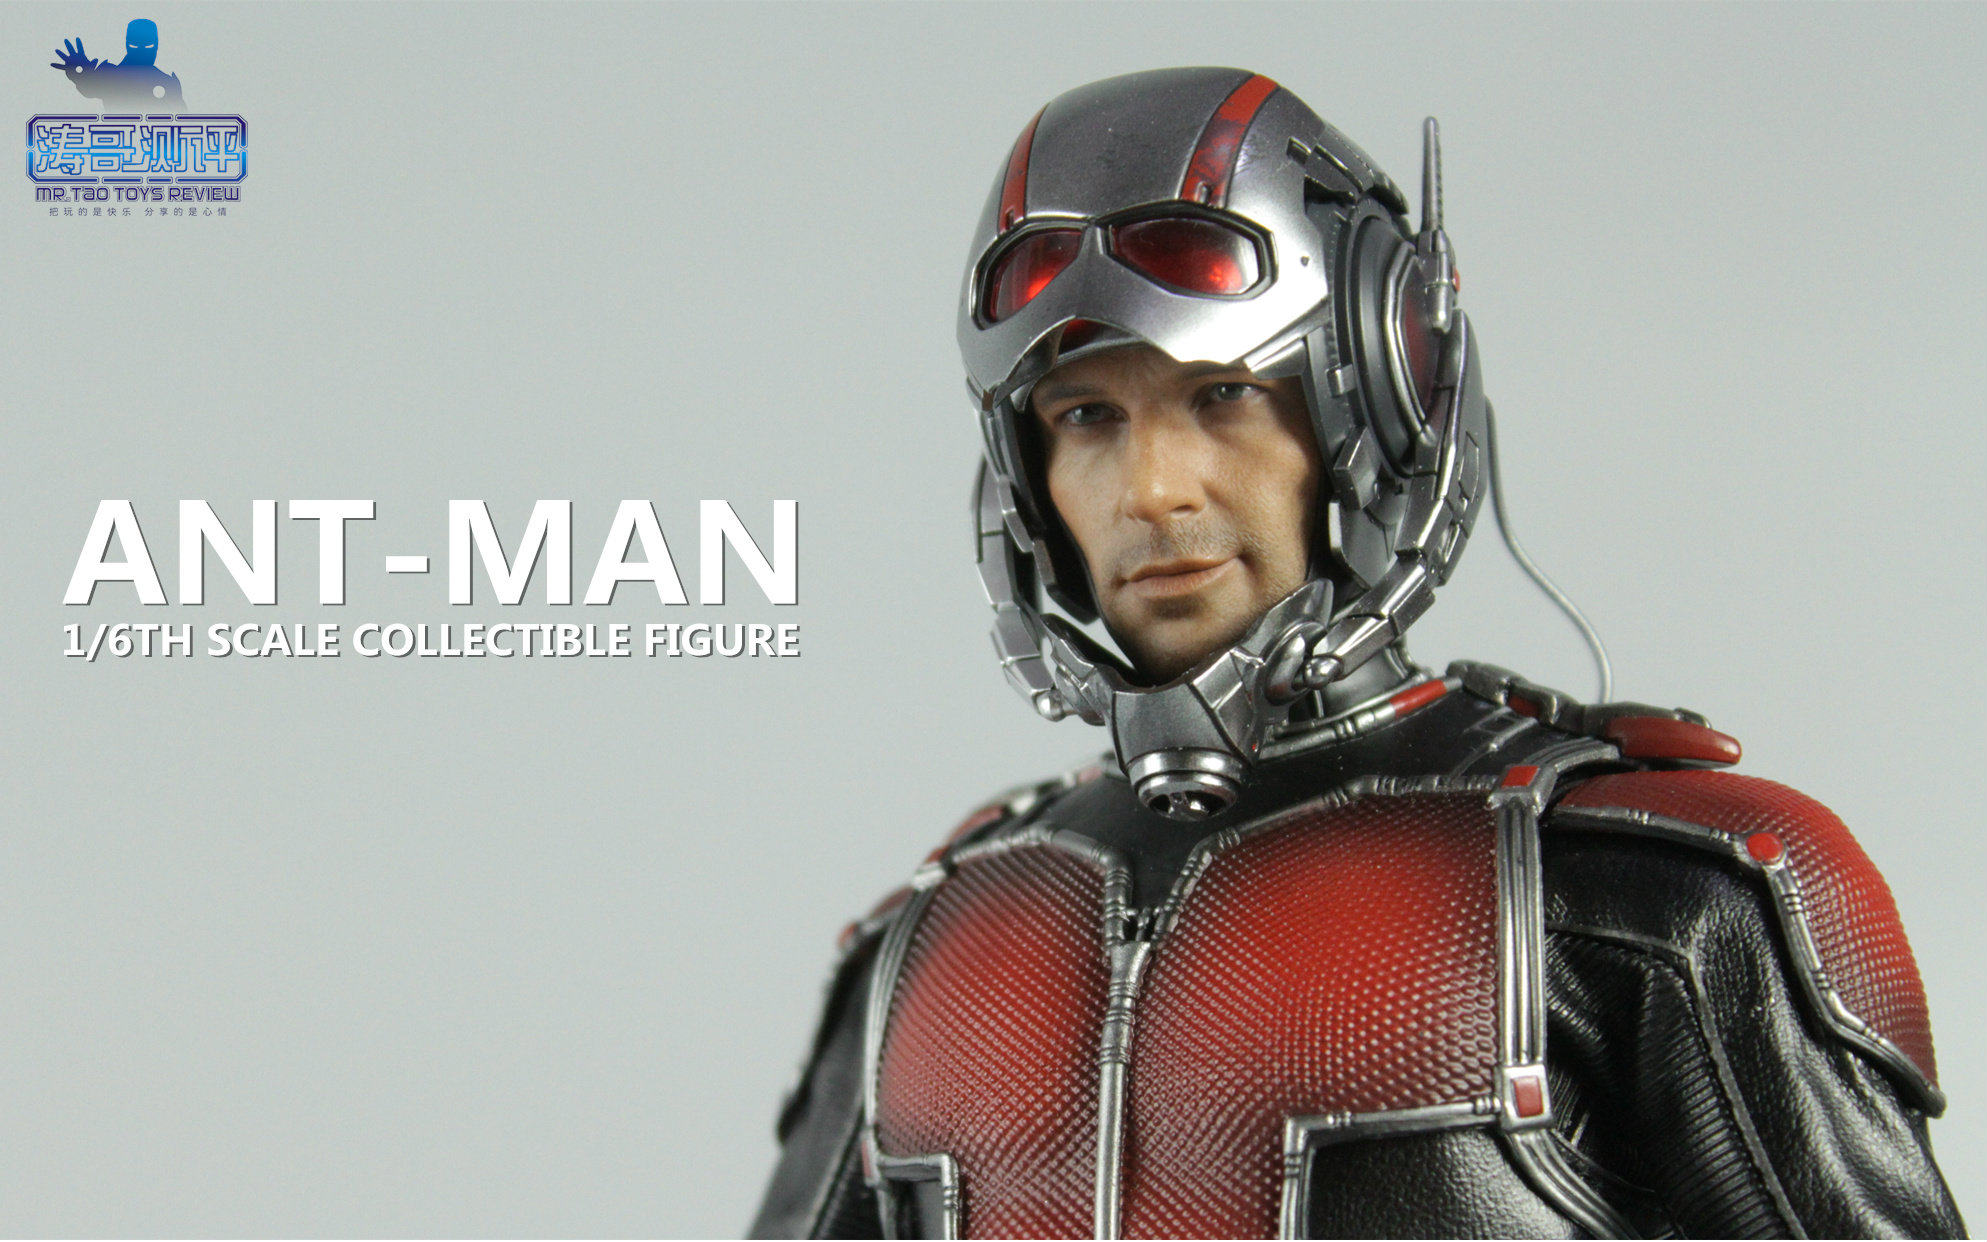 Watch Ant-Man Online Free Full Movie on Popcorn Time